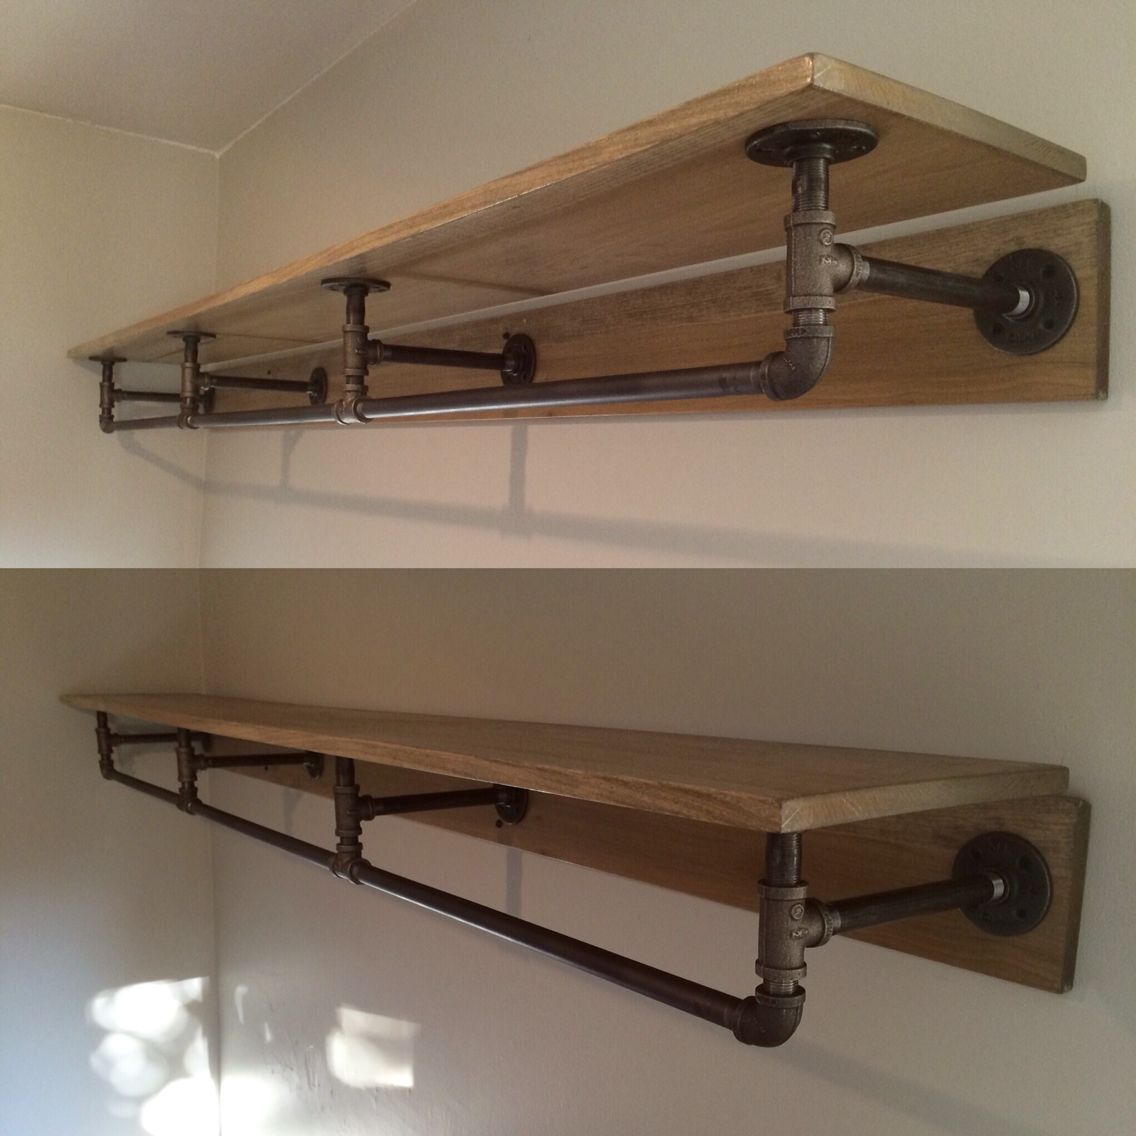 Pipe Shelving Made From Metal Piping and Stained Wood Pipe